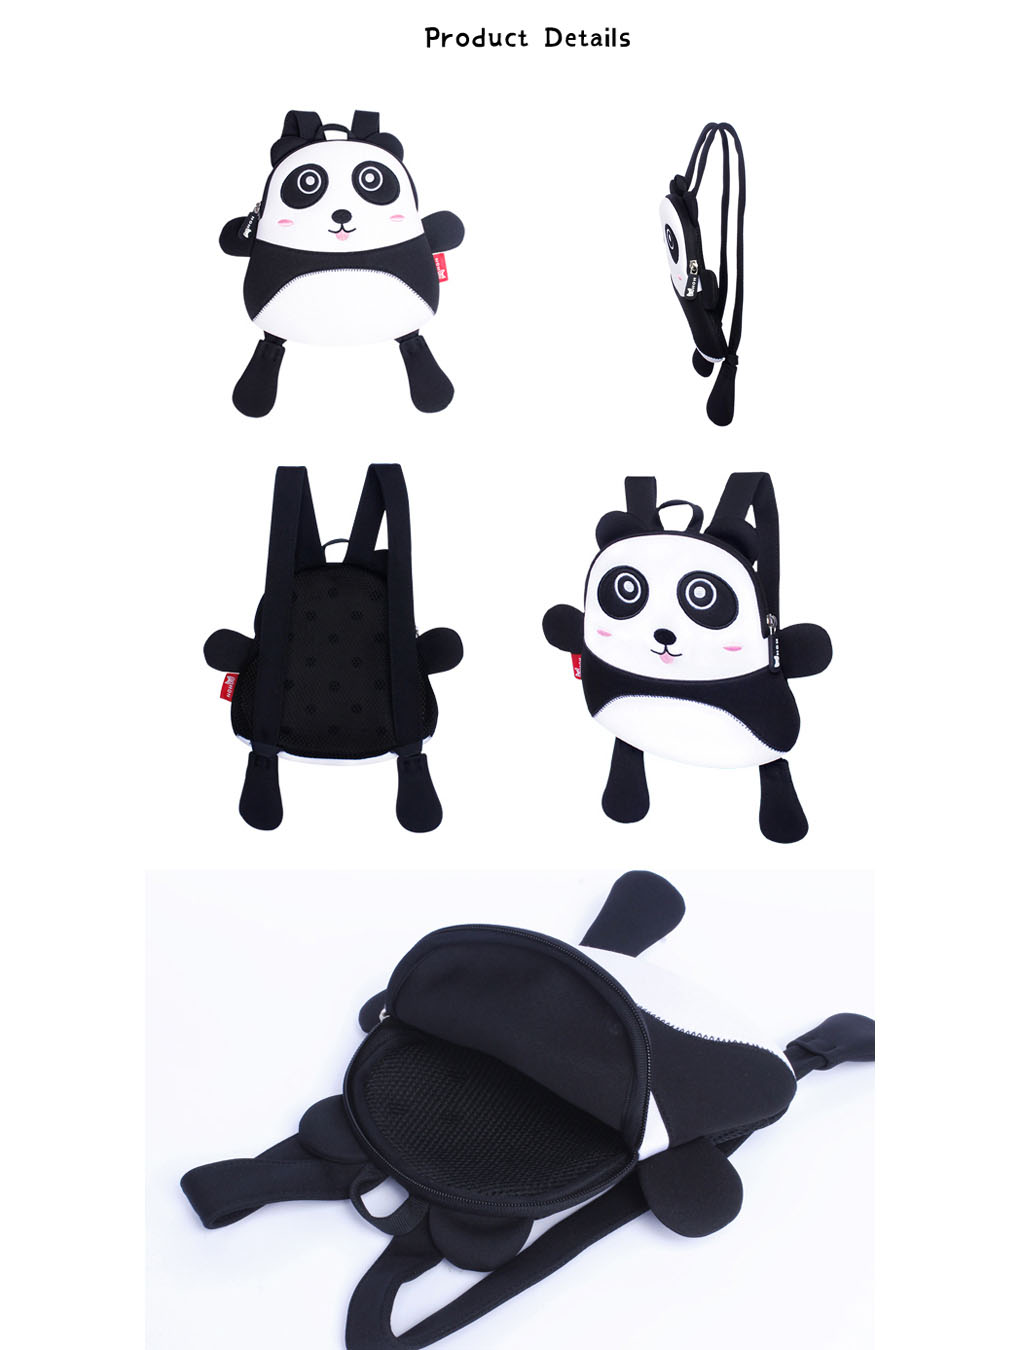 Nohoo Children Products-Toddler Kids Panda Backpack Anti Lost Bags With Safety For Boys Girls